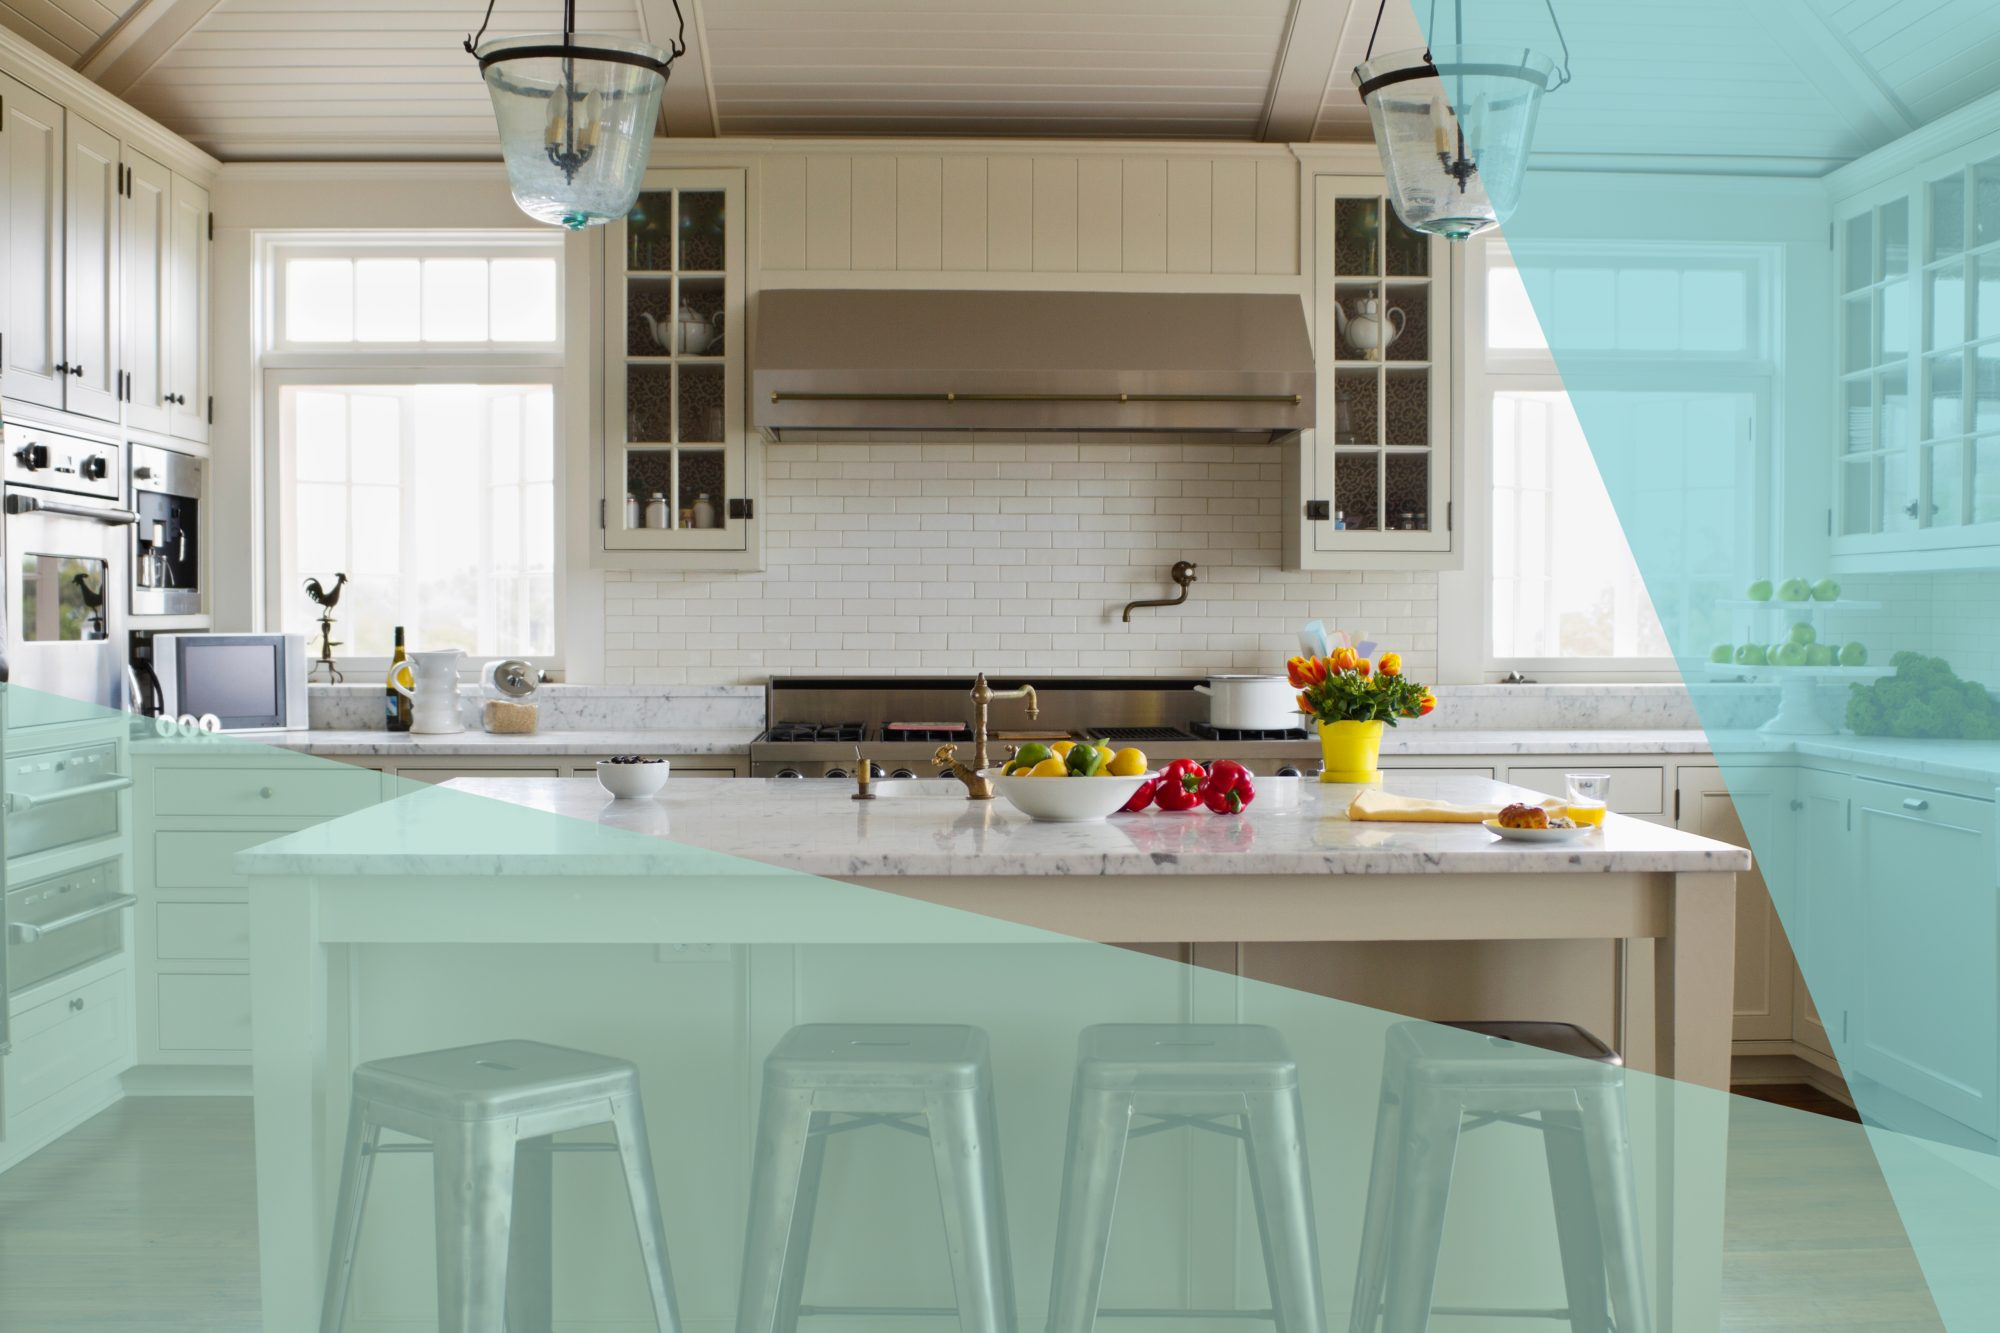 The 10 Types of Countertops You Should Know Before Renovating Your Kitchen or Bathroom